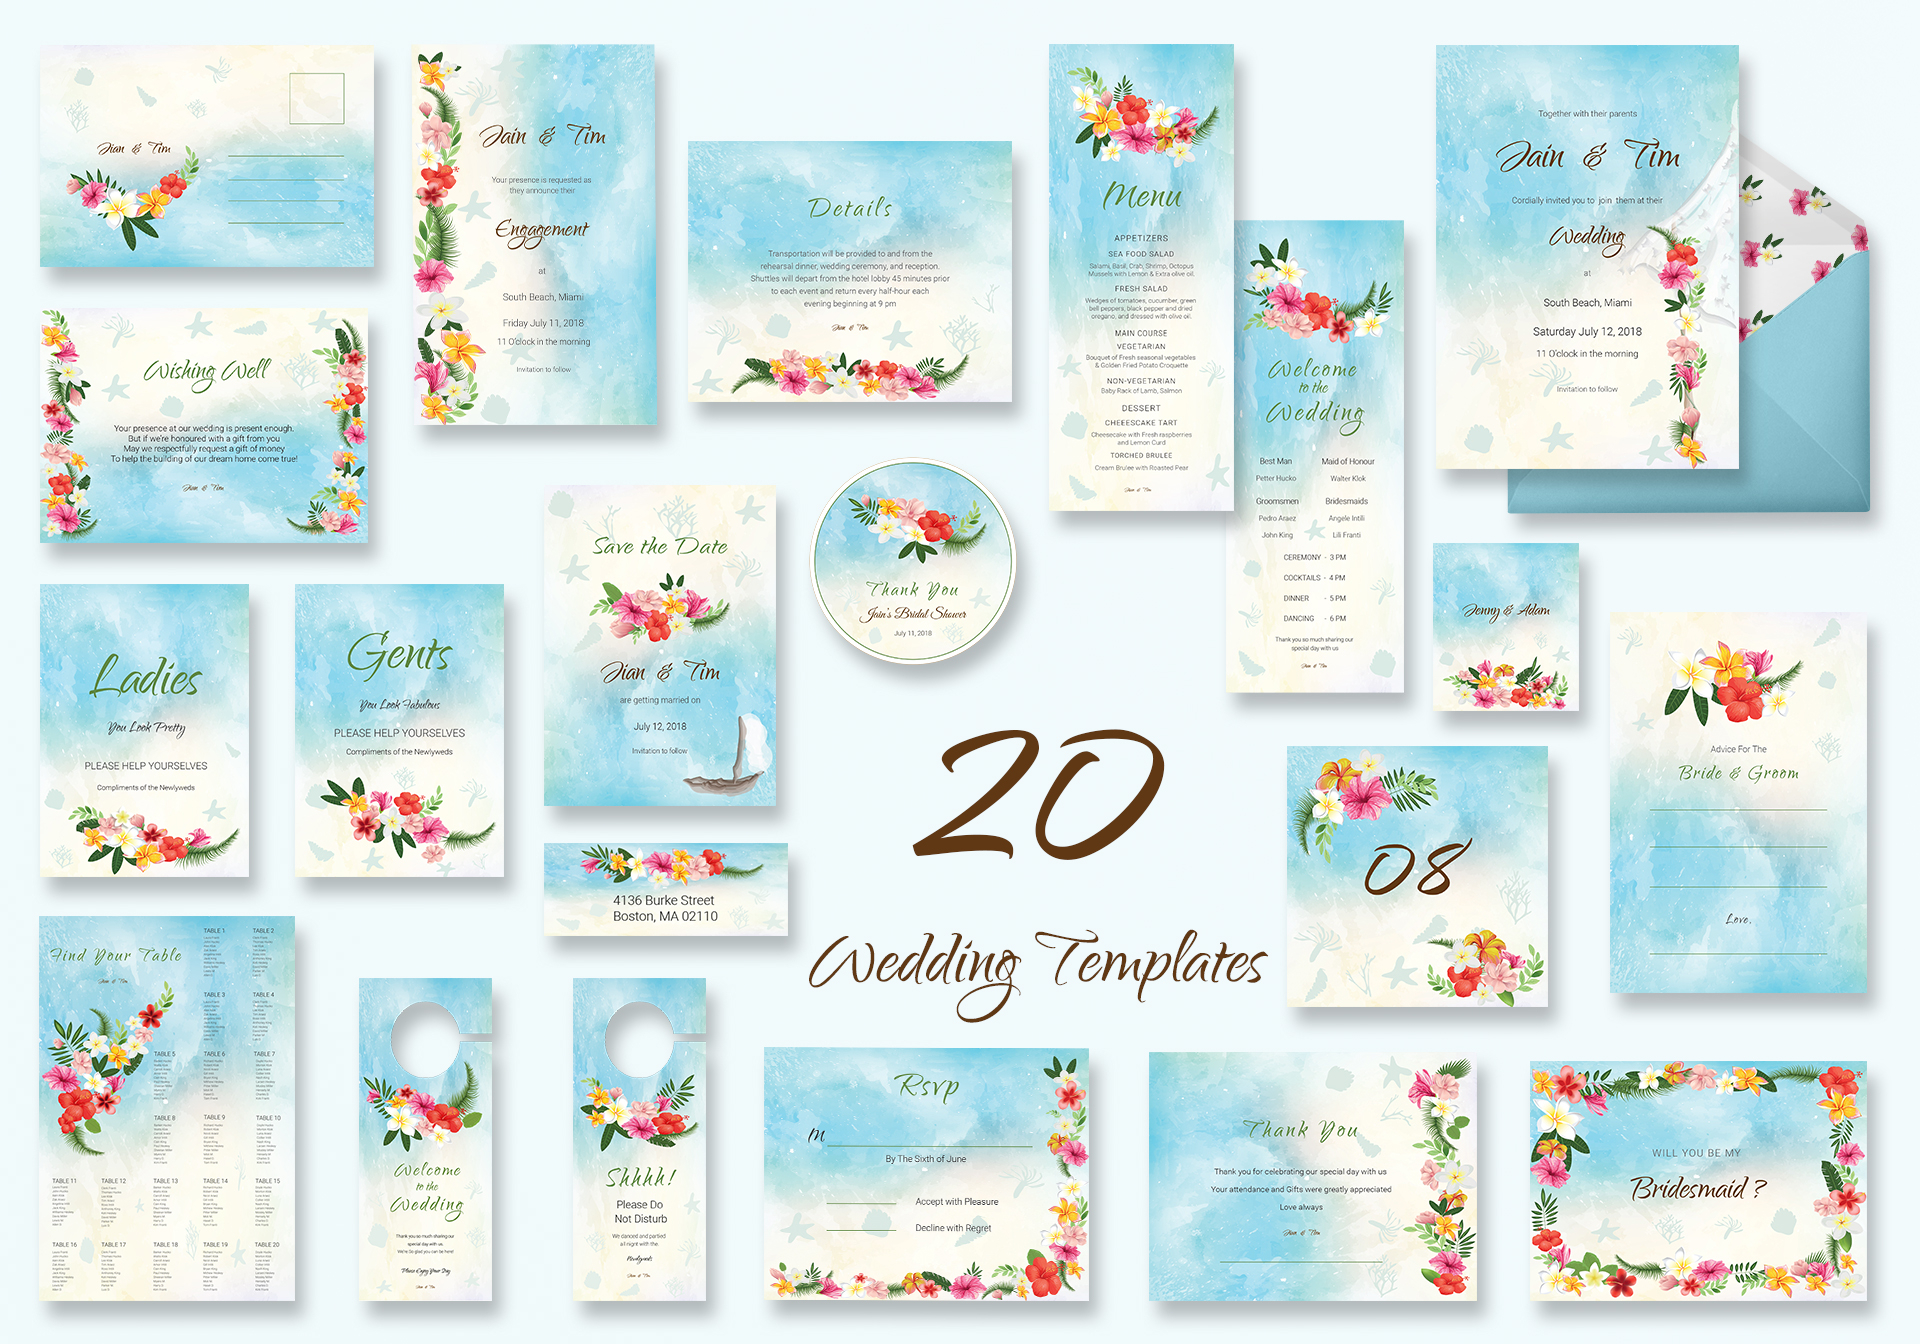 Beach Wedding Templates